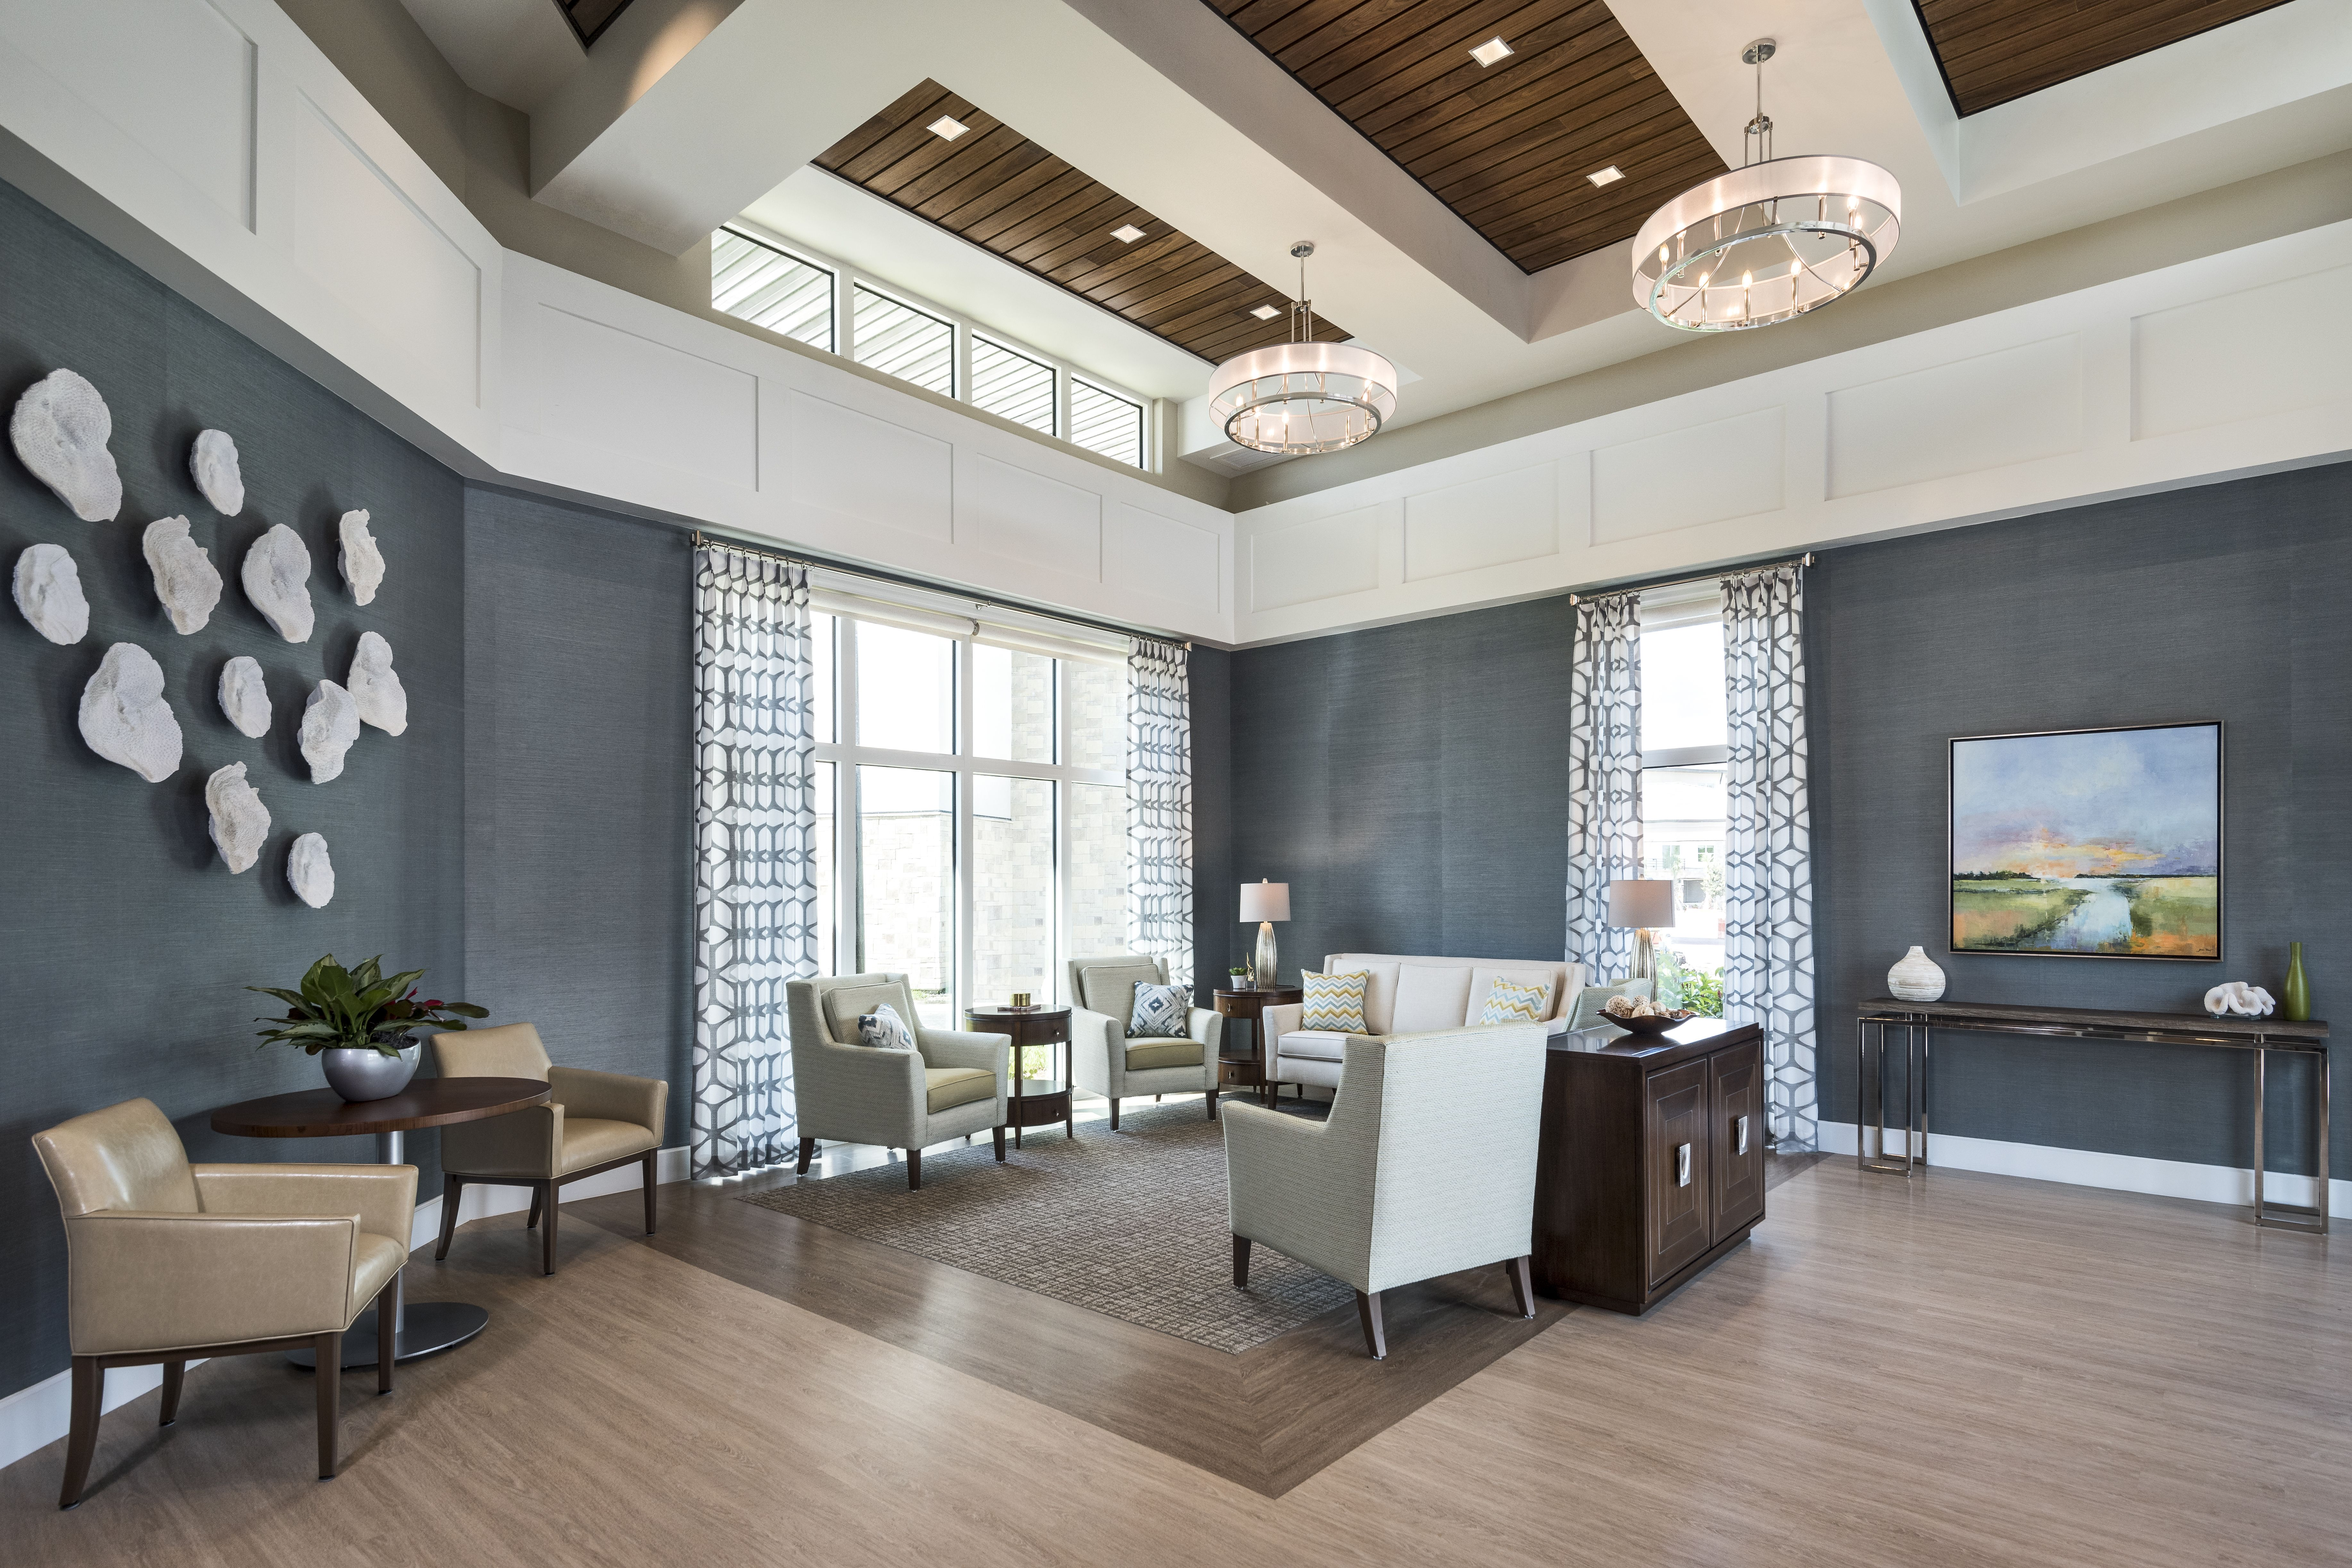 This Elegantly Decorated Entryway Was Designed By Wegman Design